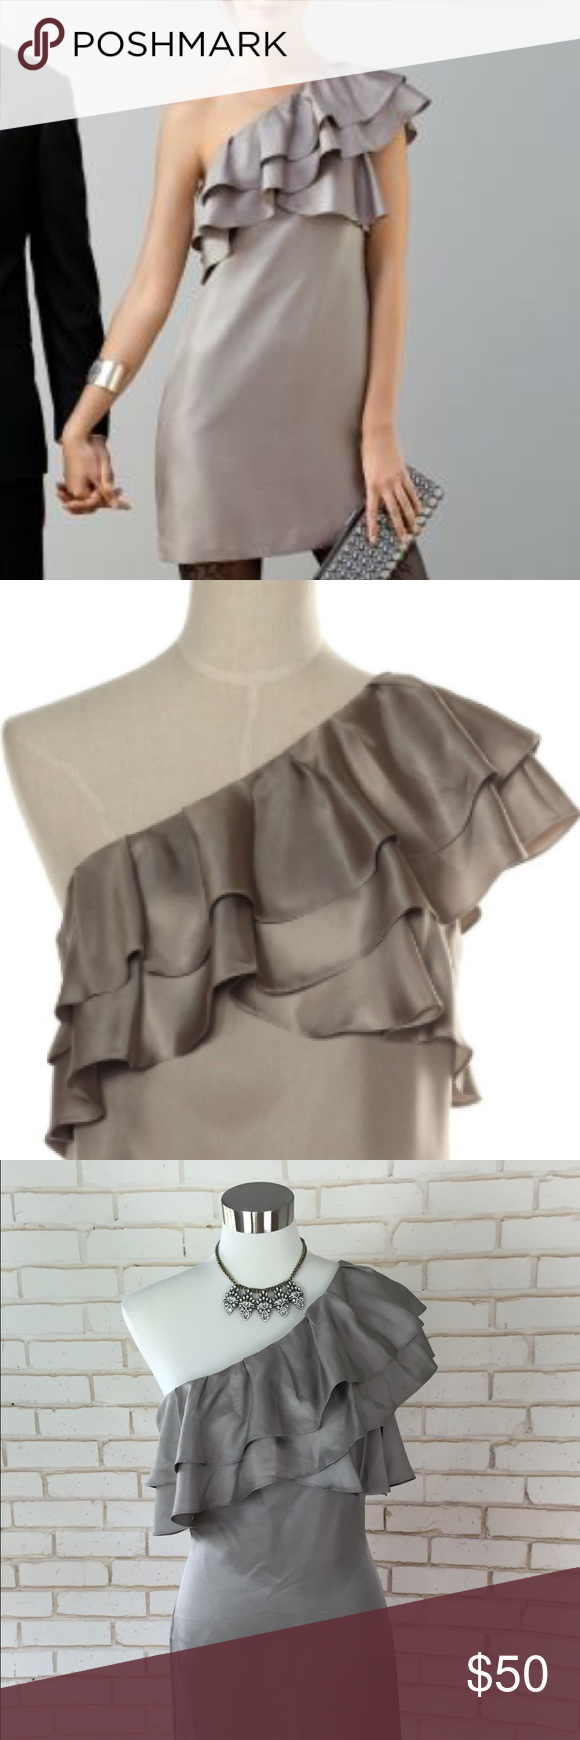 {Banana Republic} Silk Ruffle Minidress GORGEOUS NWOT 100% silk, fully lined shimmery taupe minidress with flouncy ruffed one shoulder detail. Perfect for a holiday party with tights and gorgeous heels...(see photo one for styling ideas) this has never been worn, but tags were removed. In perfect condition, retailed for $150! Banana Republic; Size 10 Banana Republic Dresses Mini